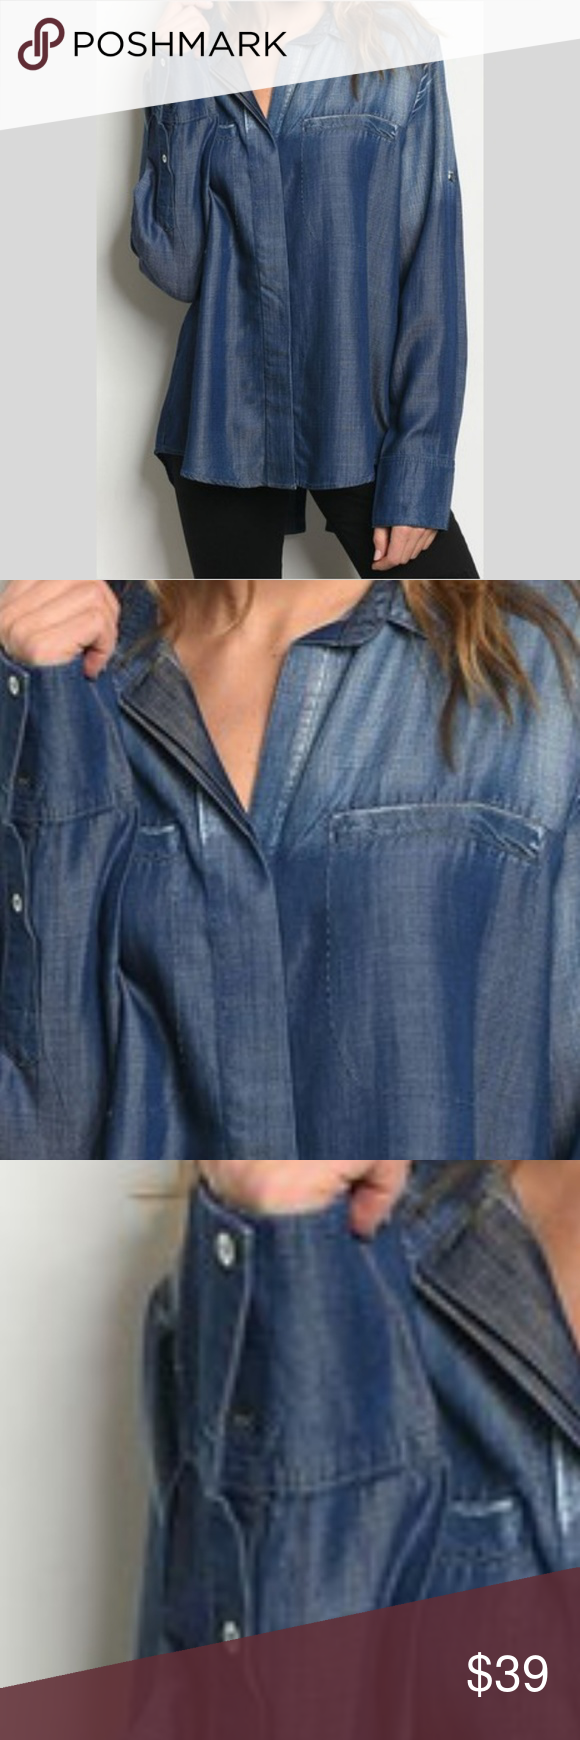 67dd2304484 Long Sleeve Button Down TENCEL Denim Shirt Brand new with tags Boutique  item What is TENCEL